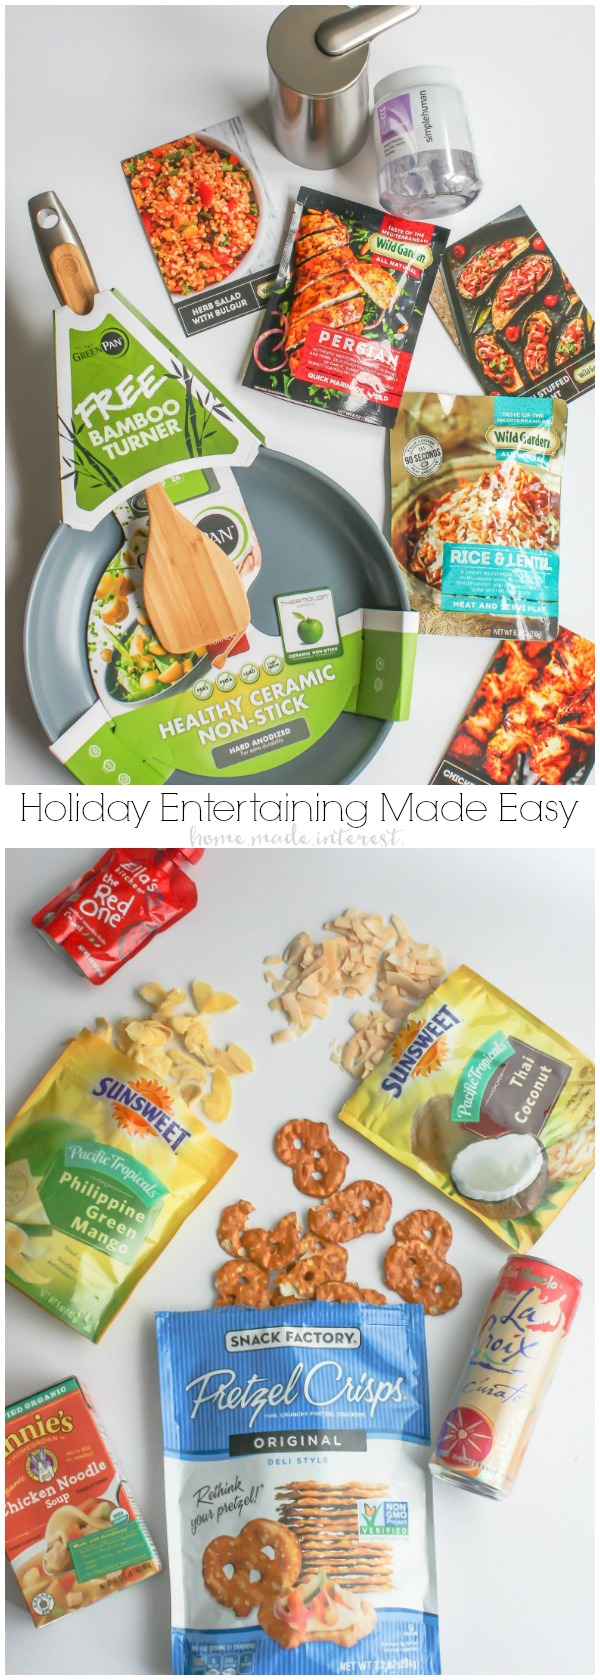 We've got tips and tricks for making your holiday entertaining a little easier. Easy holiday recipes, kid-friendly holiday recipes and products, products that make cooking and clean-up simple , and delicious holiday snack recipes. Make holiday entertaining easy this year and enjoy time with your family and friends!